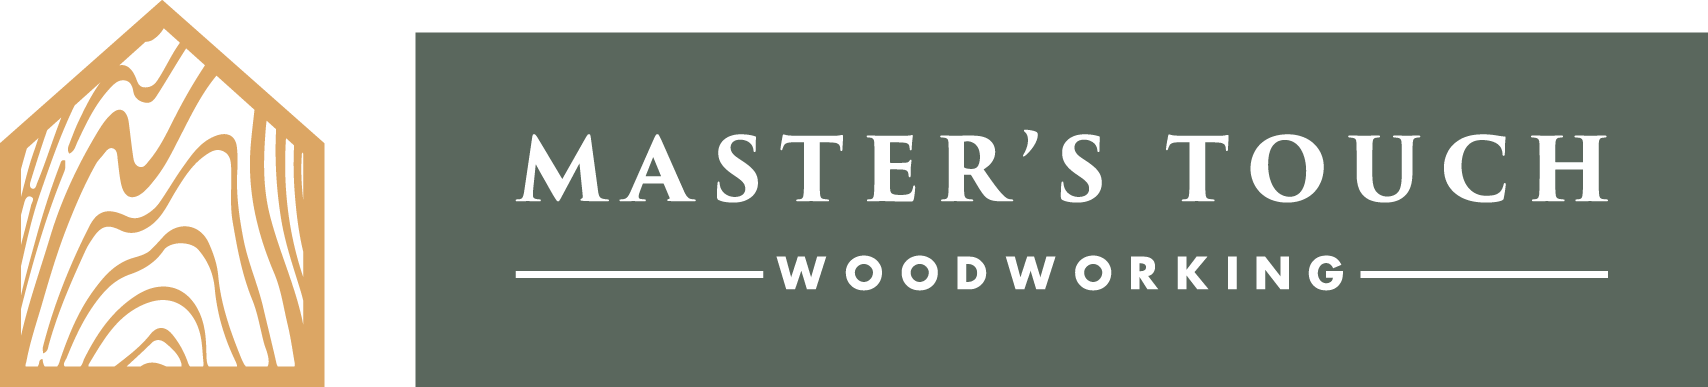 Masters Touch Woodworking